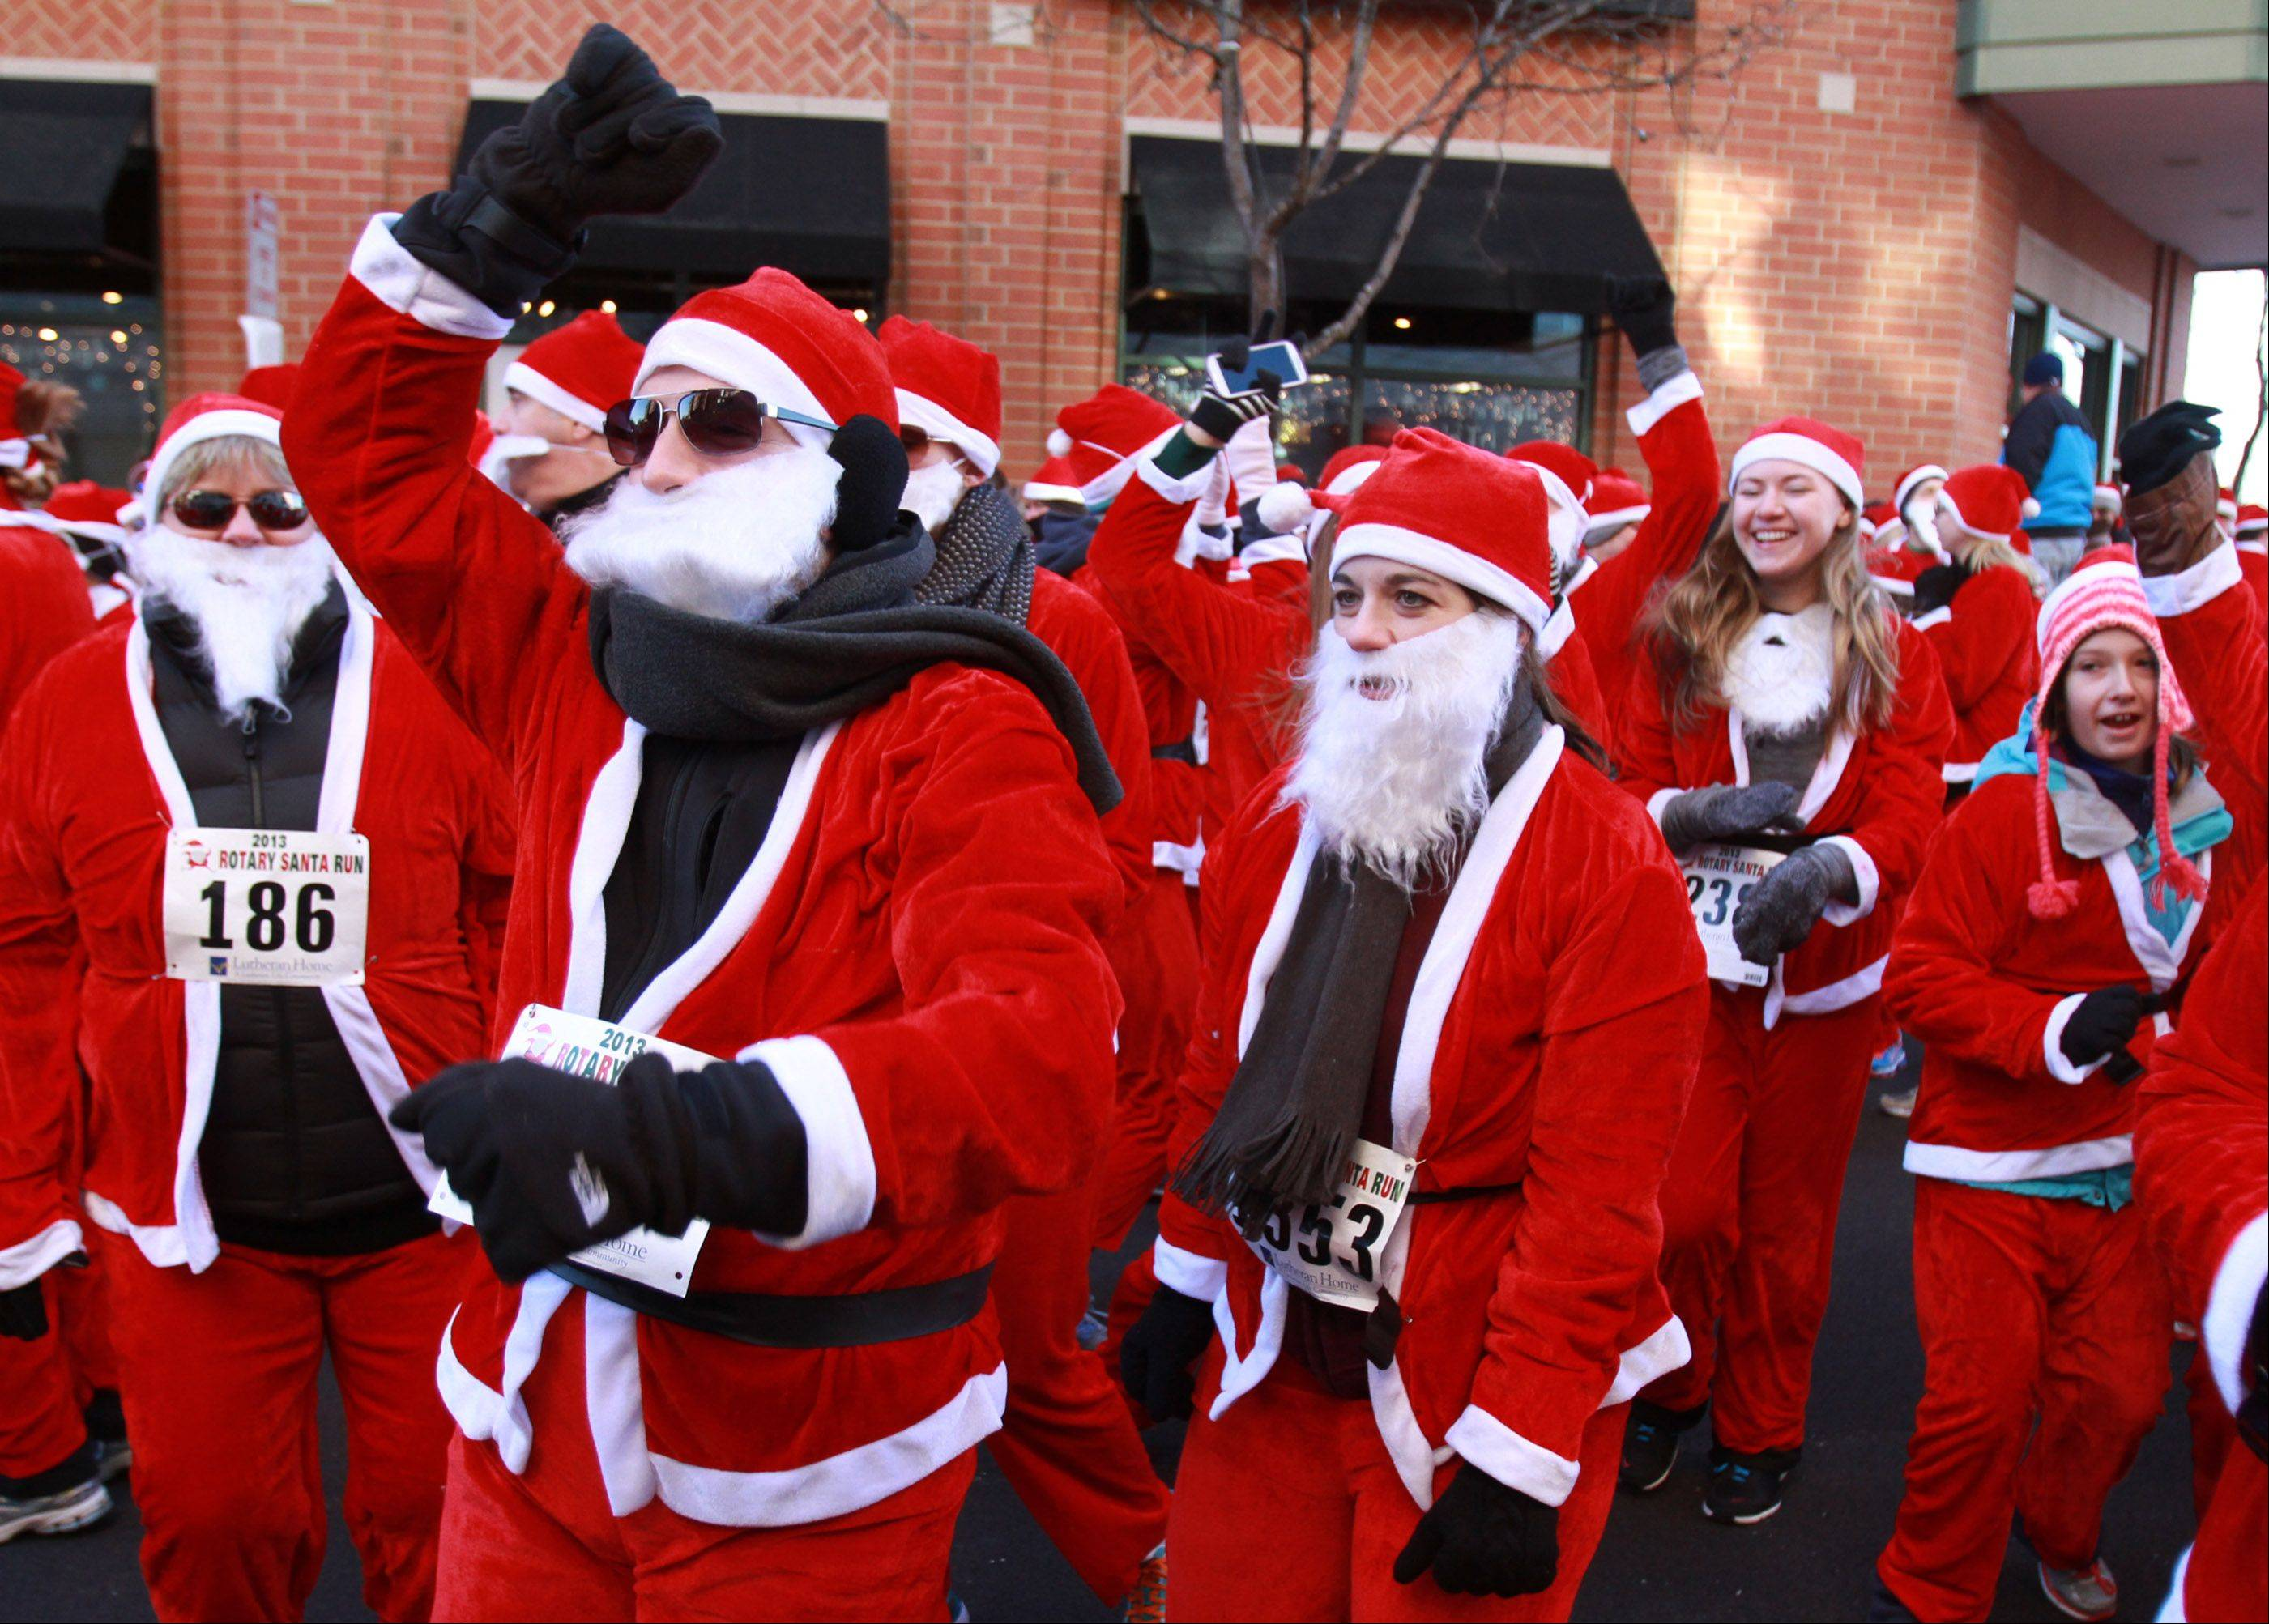 Jeff Zilke, a Palatine resident and a teacher at Sundling Junior High, warms up by dancing before the Rotary Santa Run on Saturday in Arlington Heights.